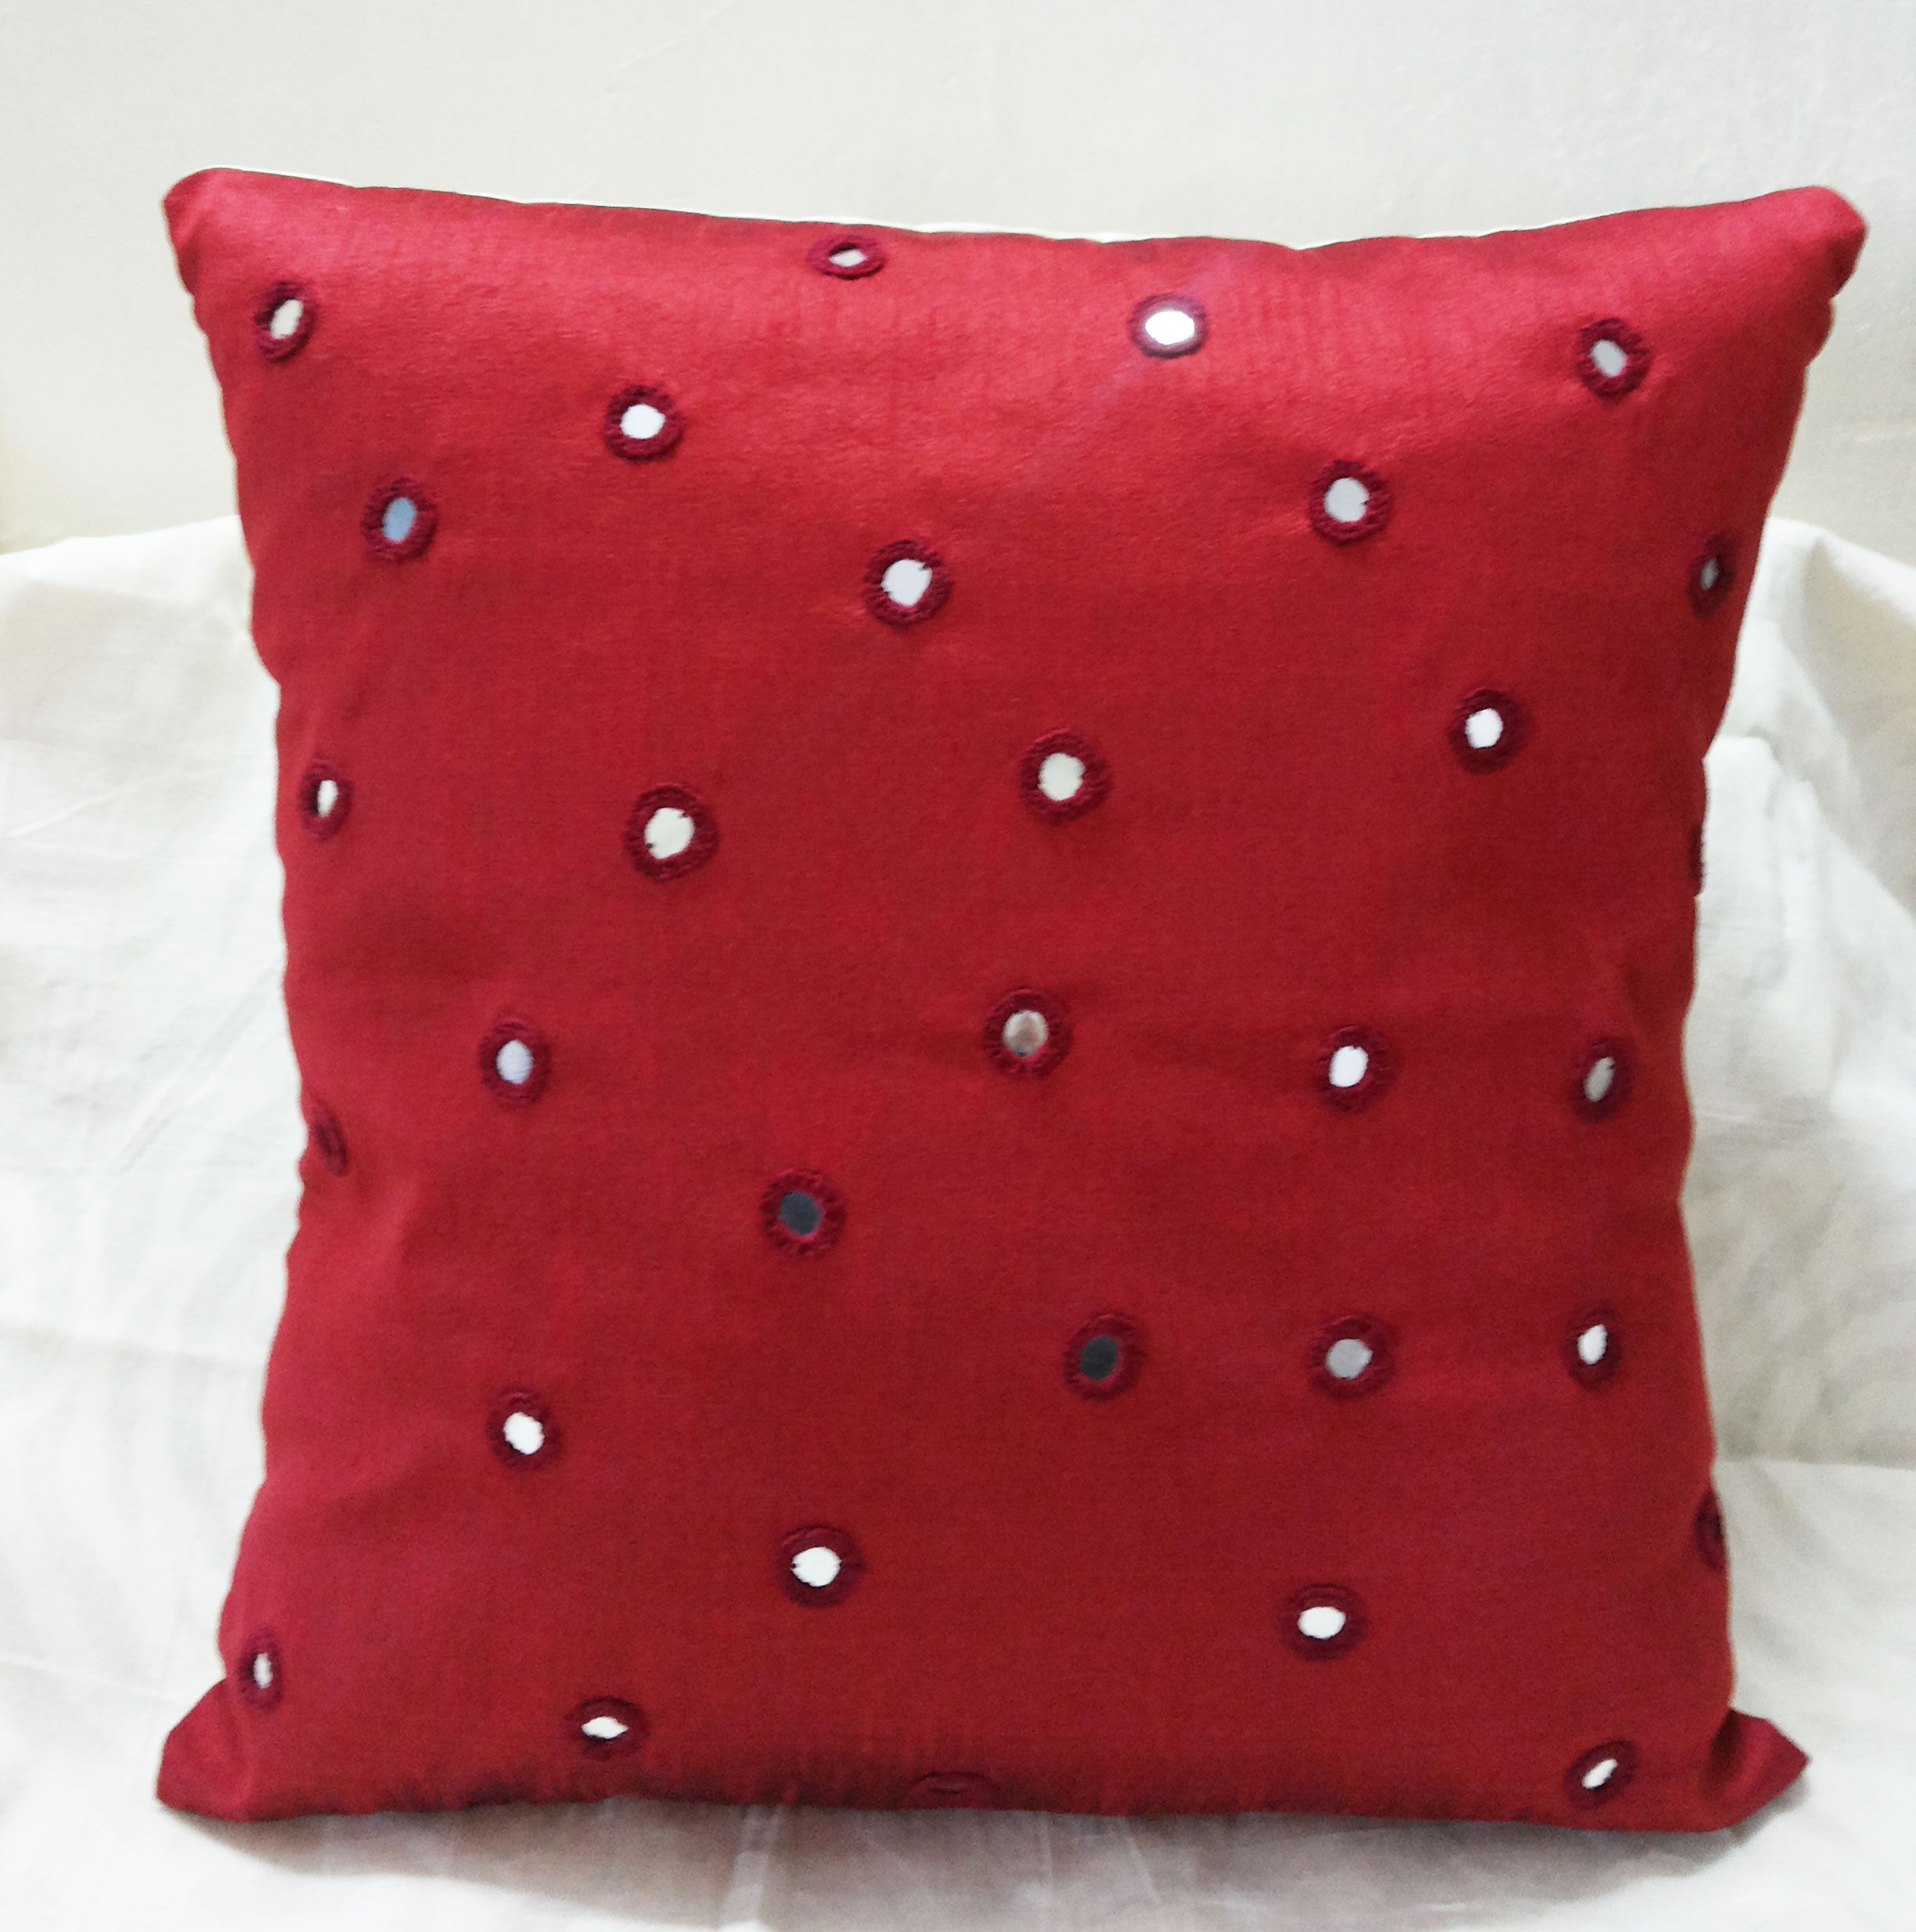 Decorative Red Throw Pillows Cover